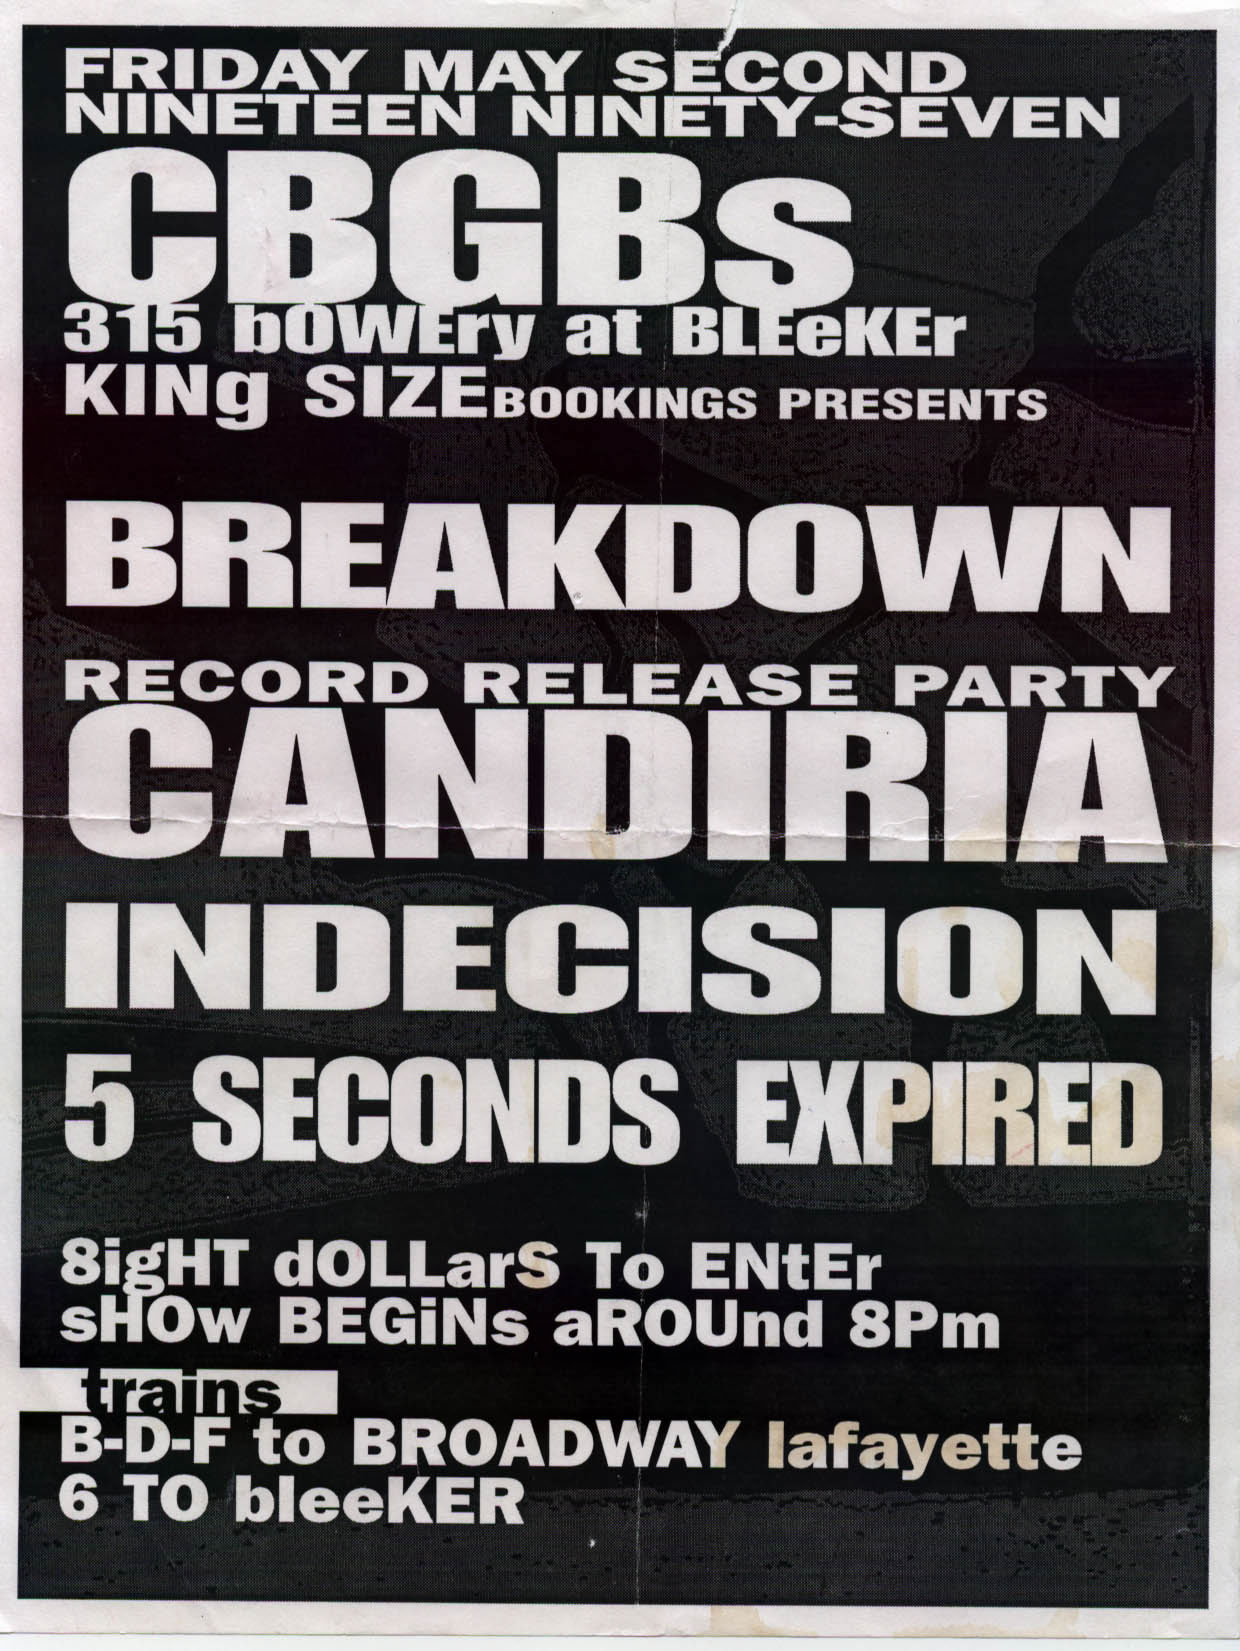 Breakdown-Candiria-Indecision-5 Seconds Expired @ CBGB New York City NY 5-29-97